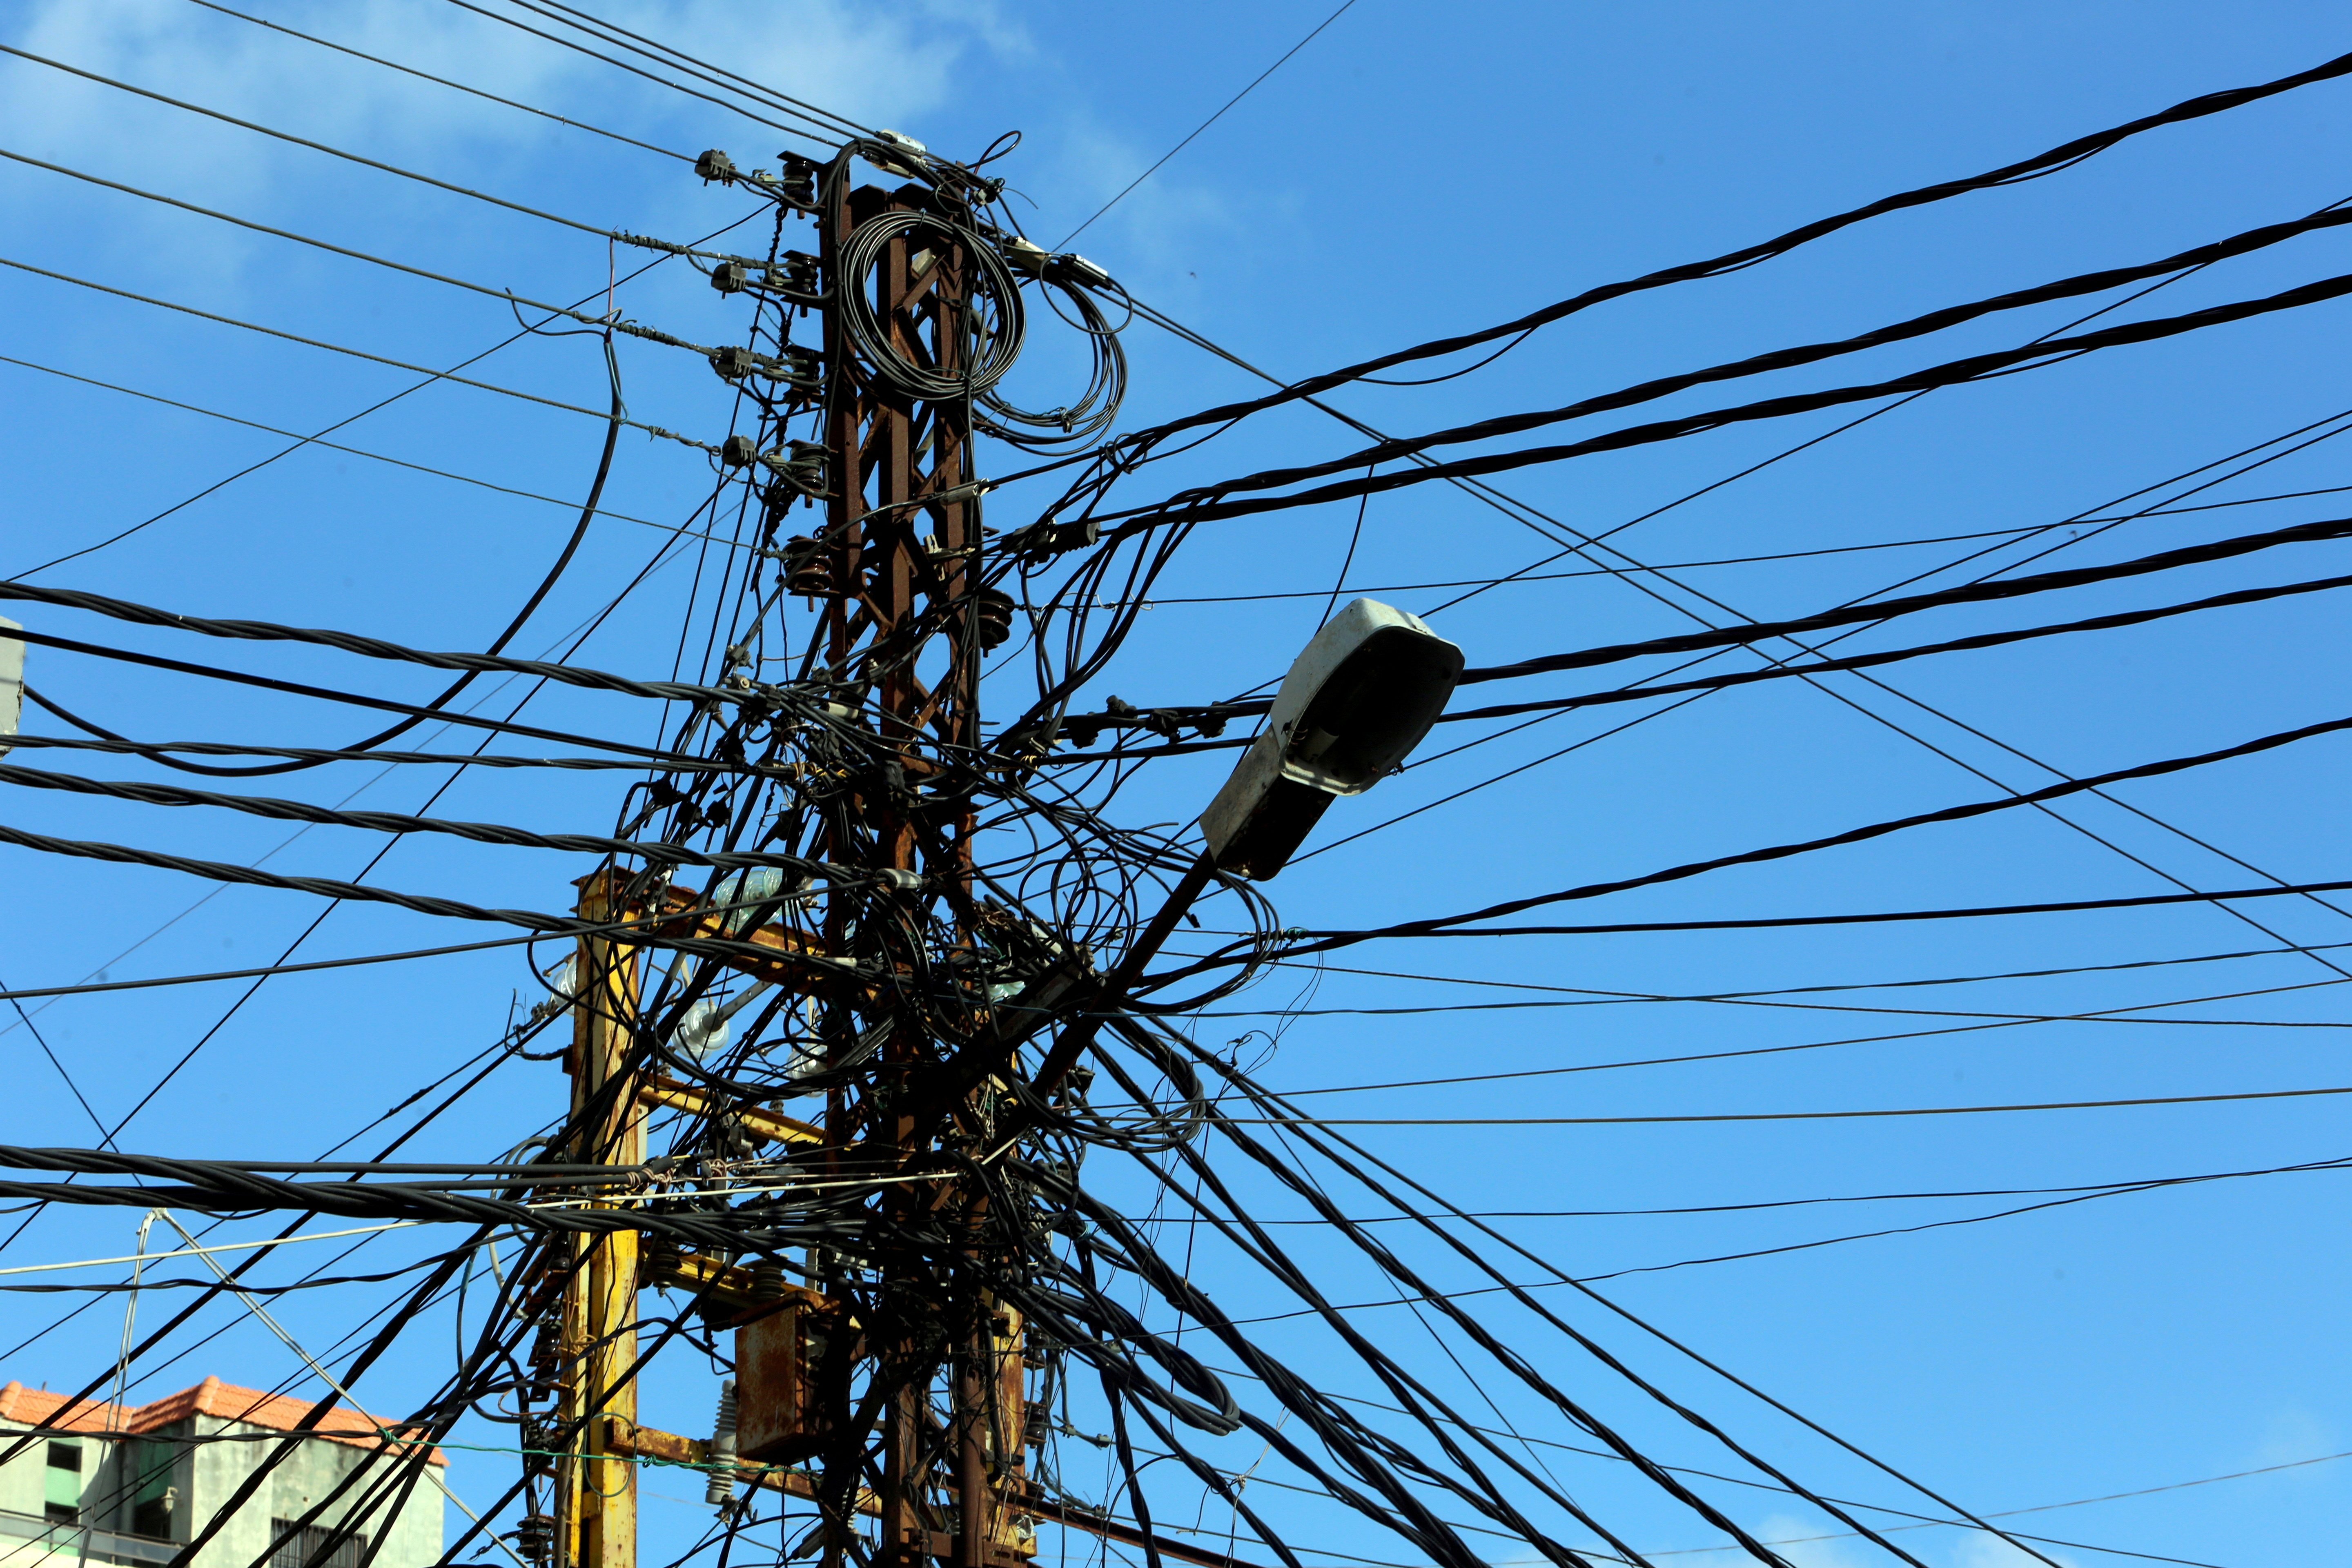 Electricity cables are seen in Tyre, Lebanon July 18, 2020. REUTERS/Aziz Taher/File Photo